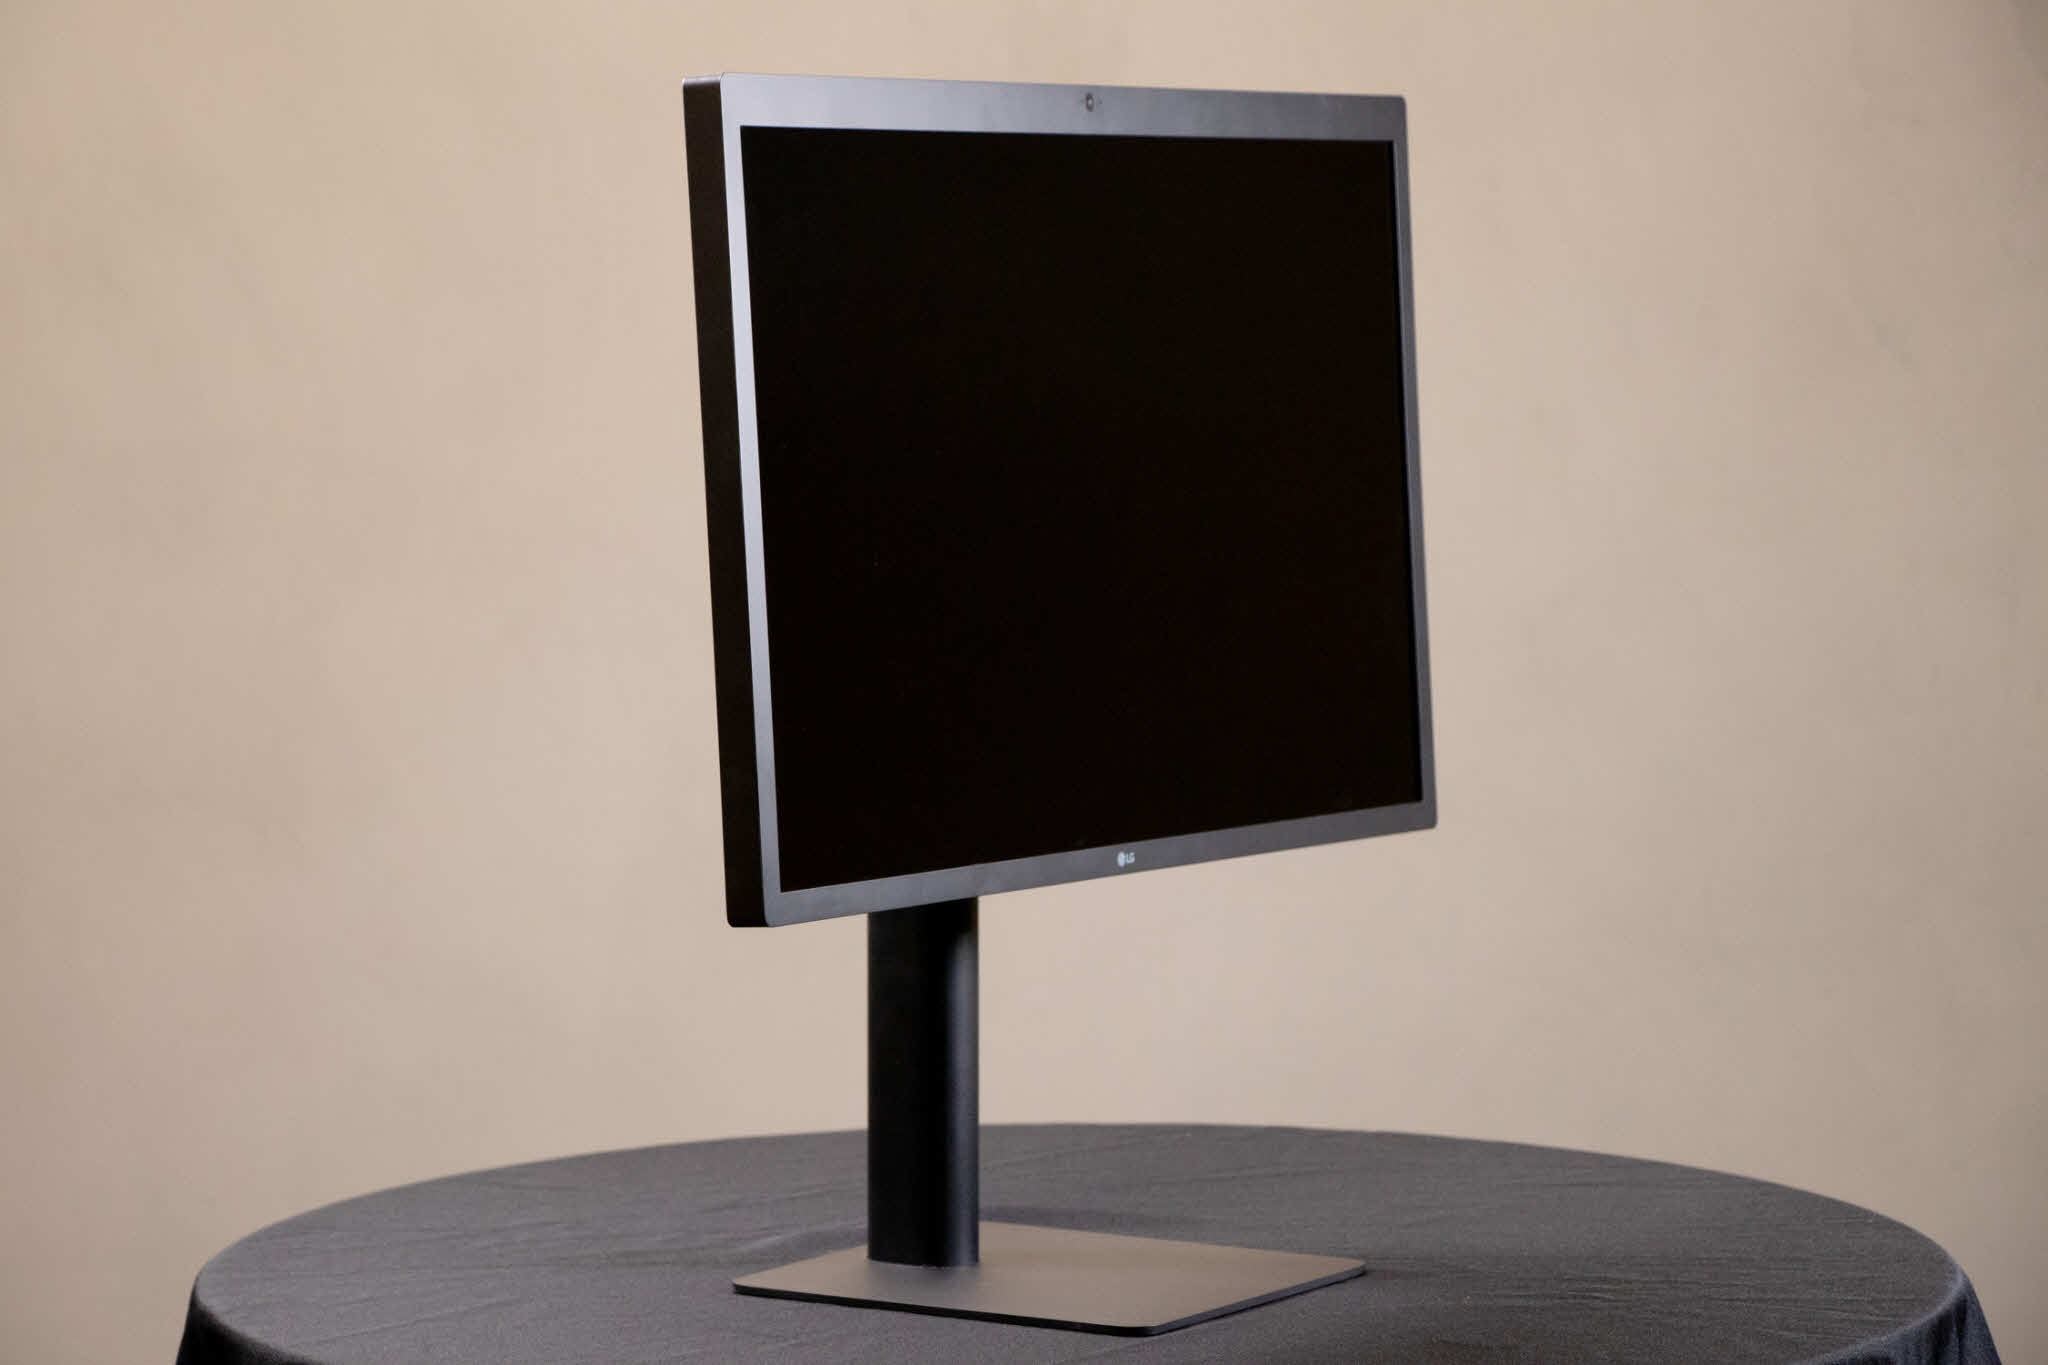 Lg Ultrafine 5k 27inch Display Studio 7 Advertorial 004